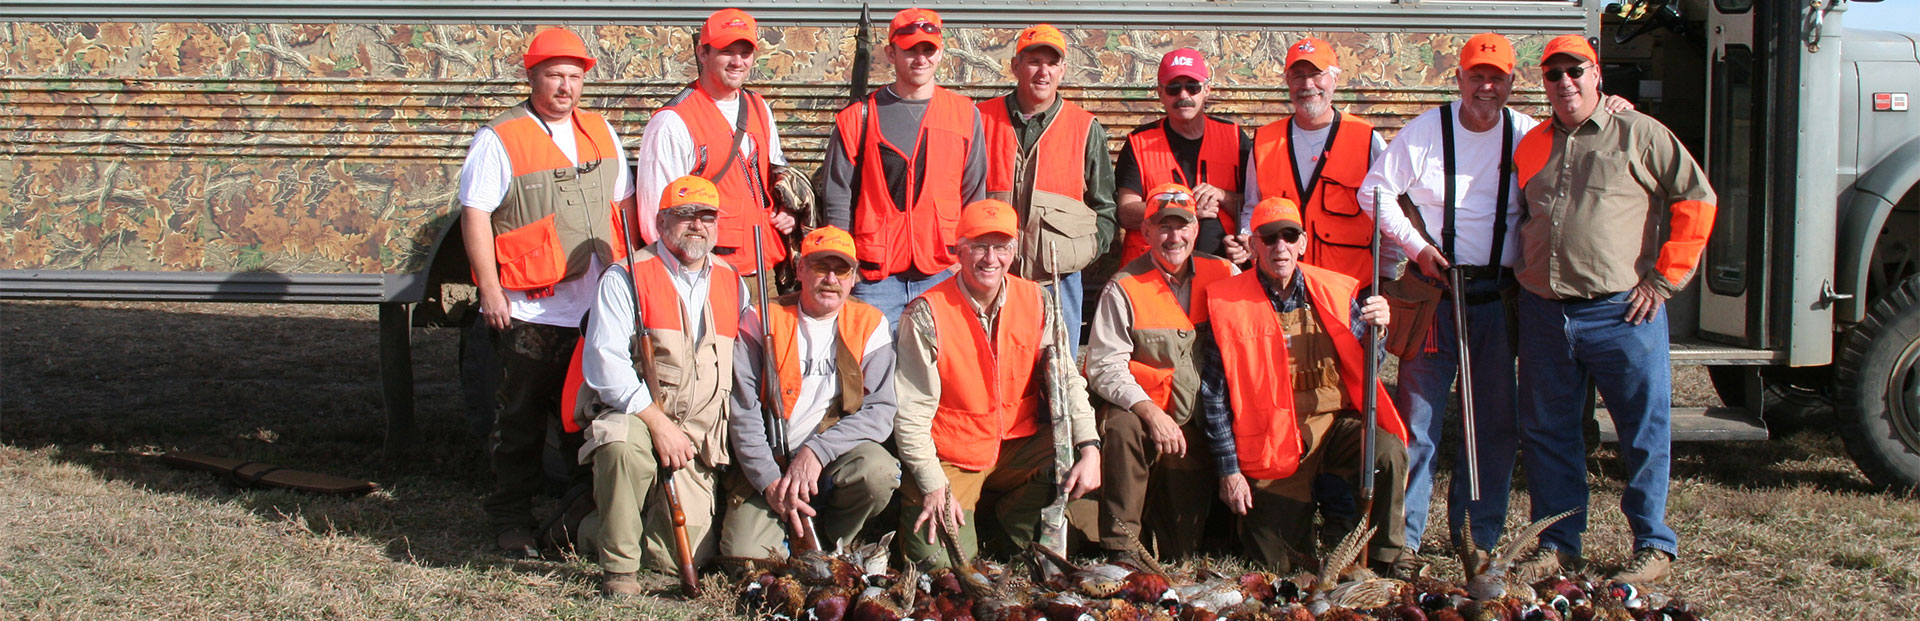 Corporate Pheasant Hunts in South Dakota